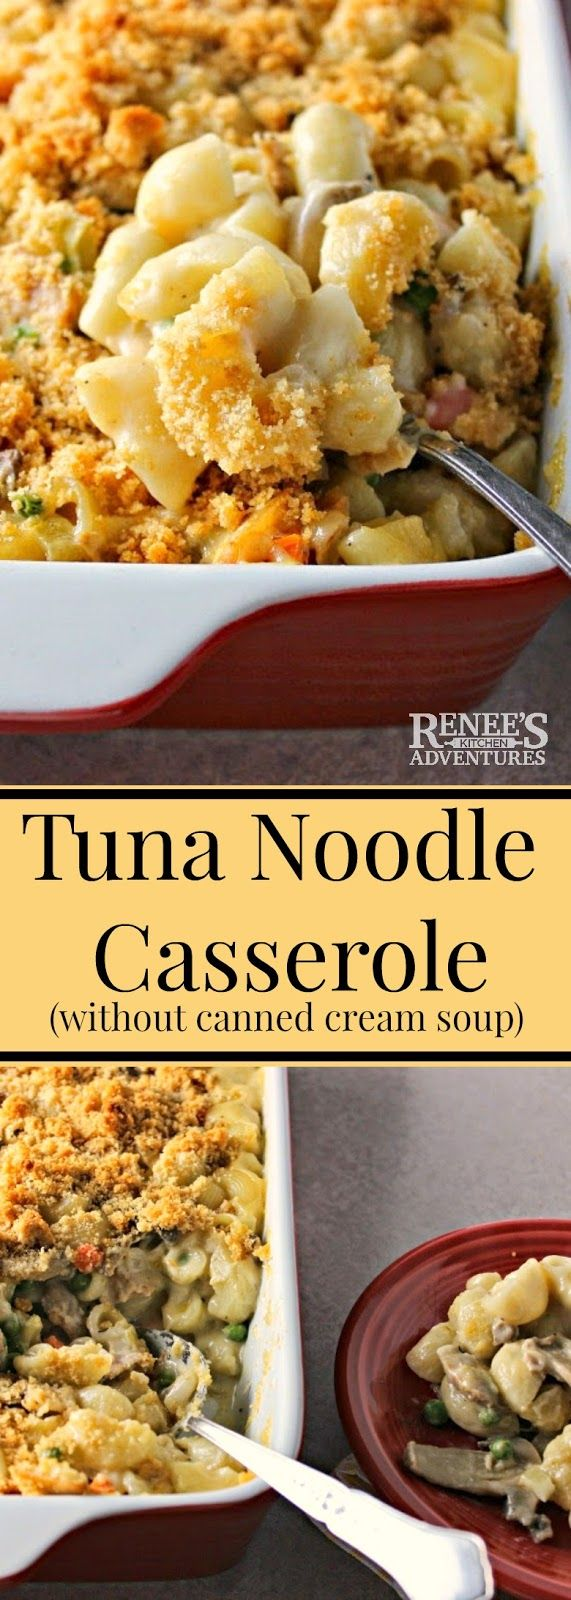 Lighter Cheesy Tuna Noodle Casserole (without Canned Cream Soup) | Renee's Kitchen Adventures - easy recipe for tuna noodle casserole made without cream of anything soup! Family recipe great for an easy dinner.